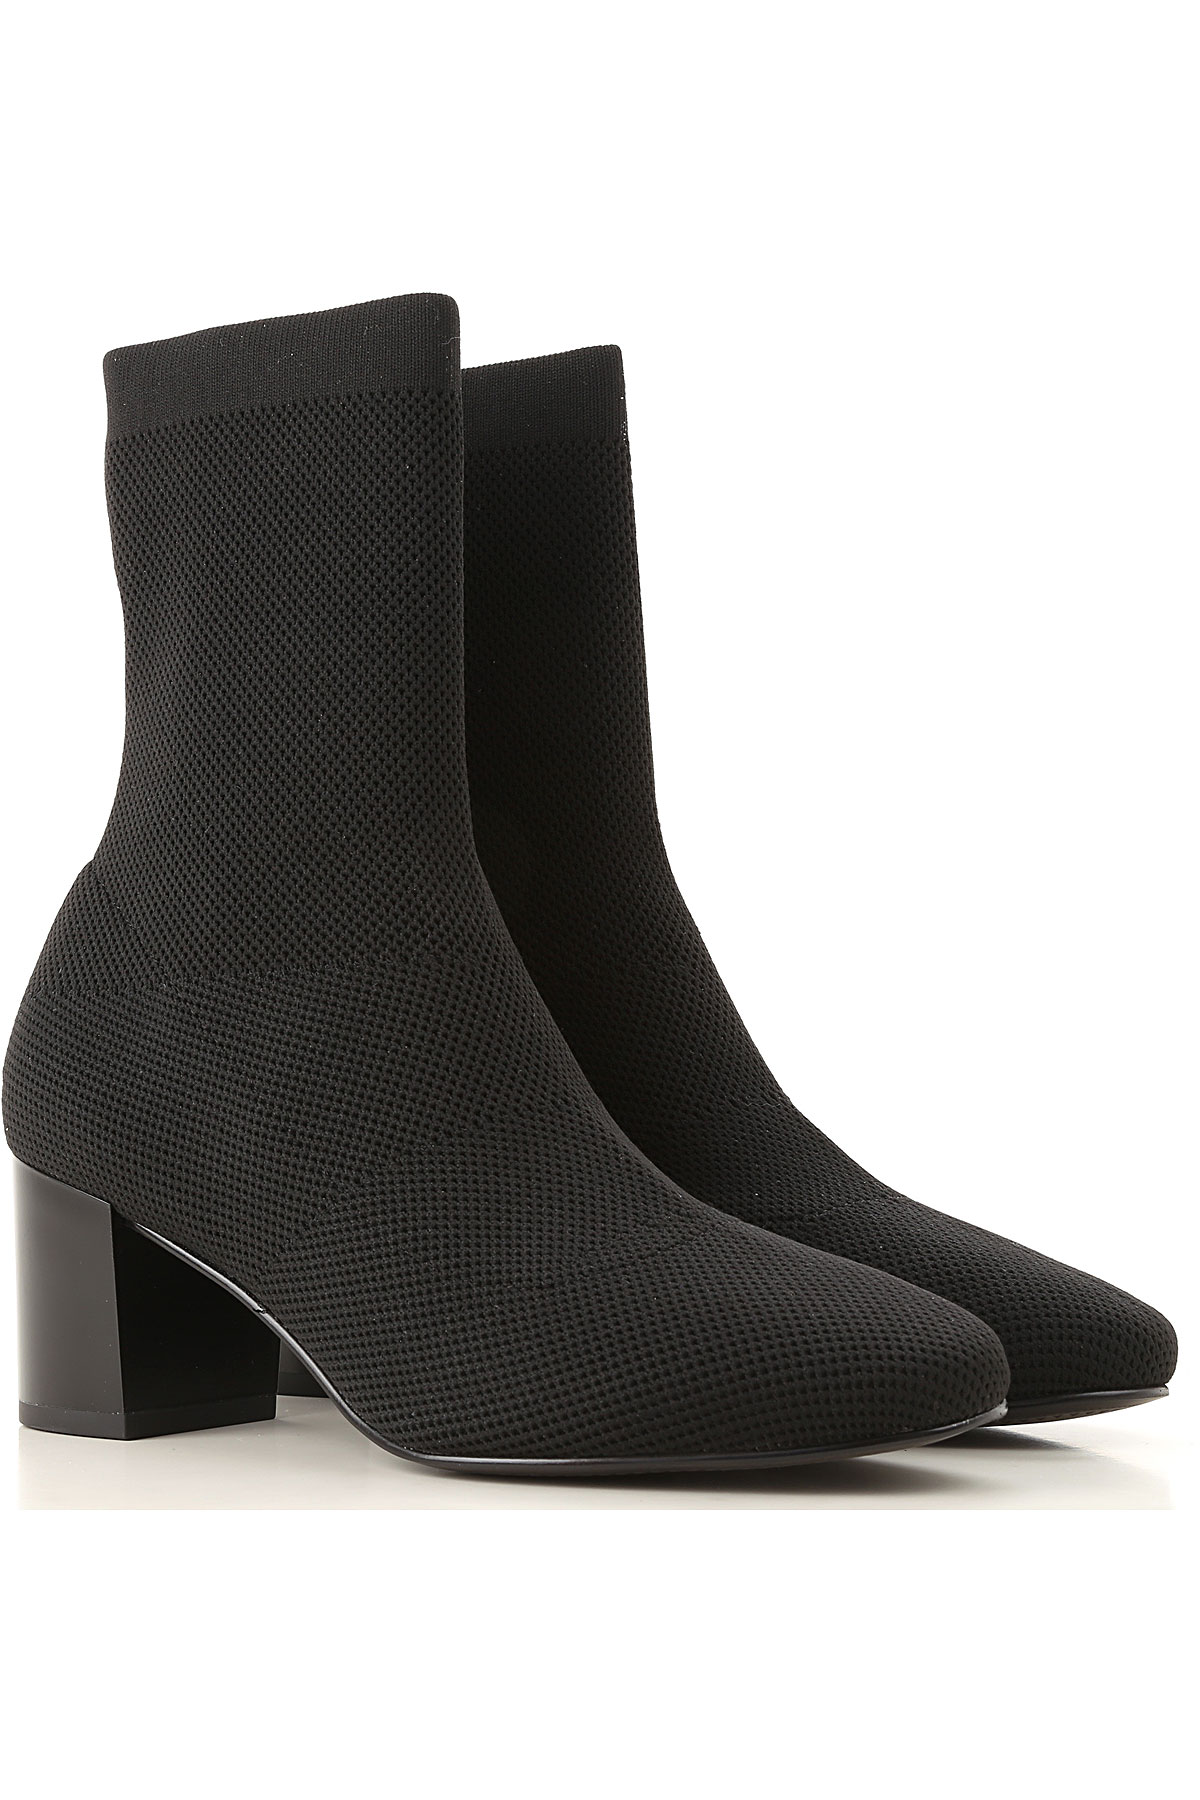 Image of What For Boots for Women, Booties, Black, Fabric, 2017, 10 11 6 7 8 9